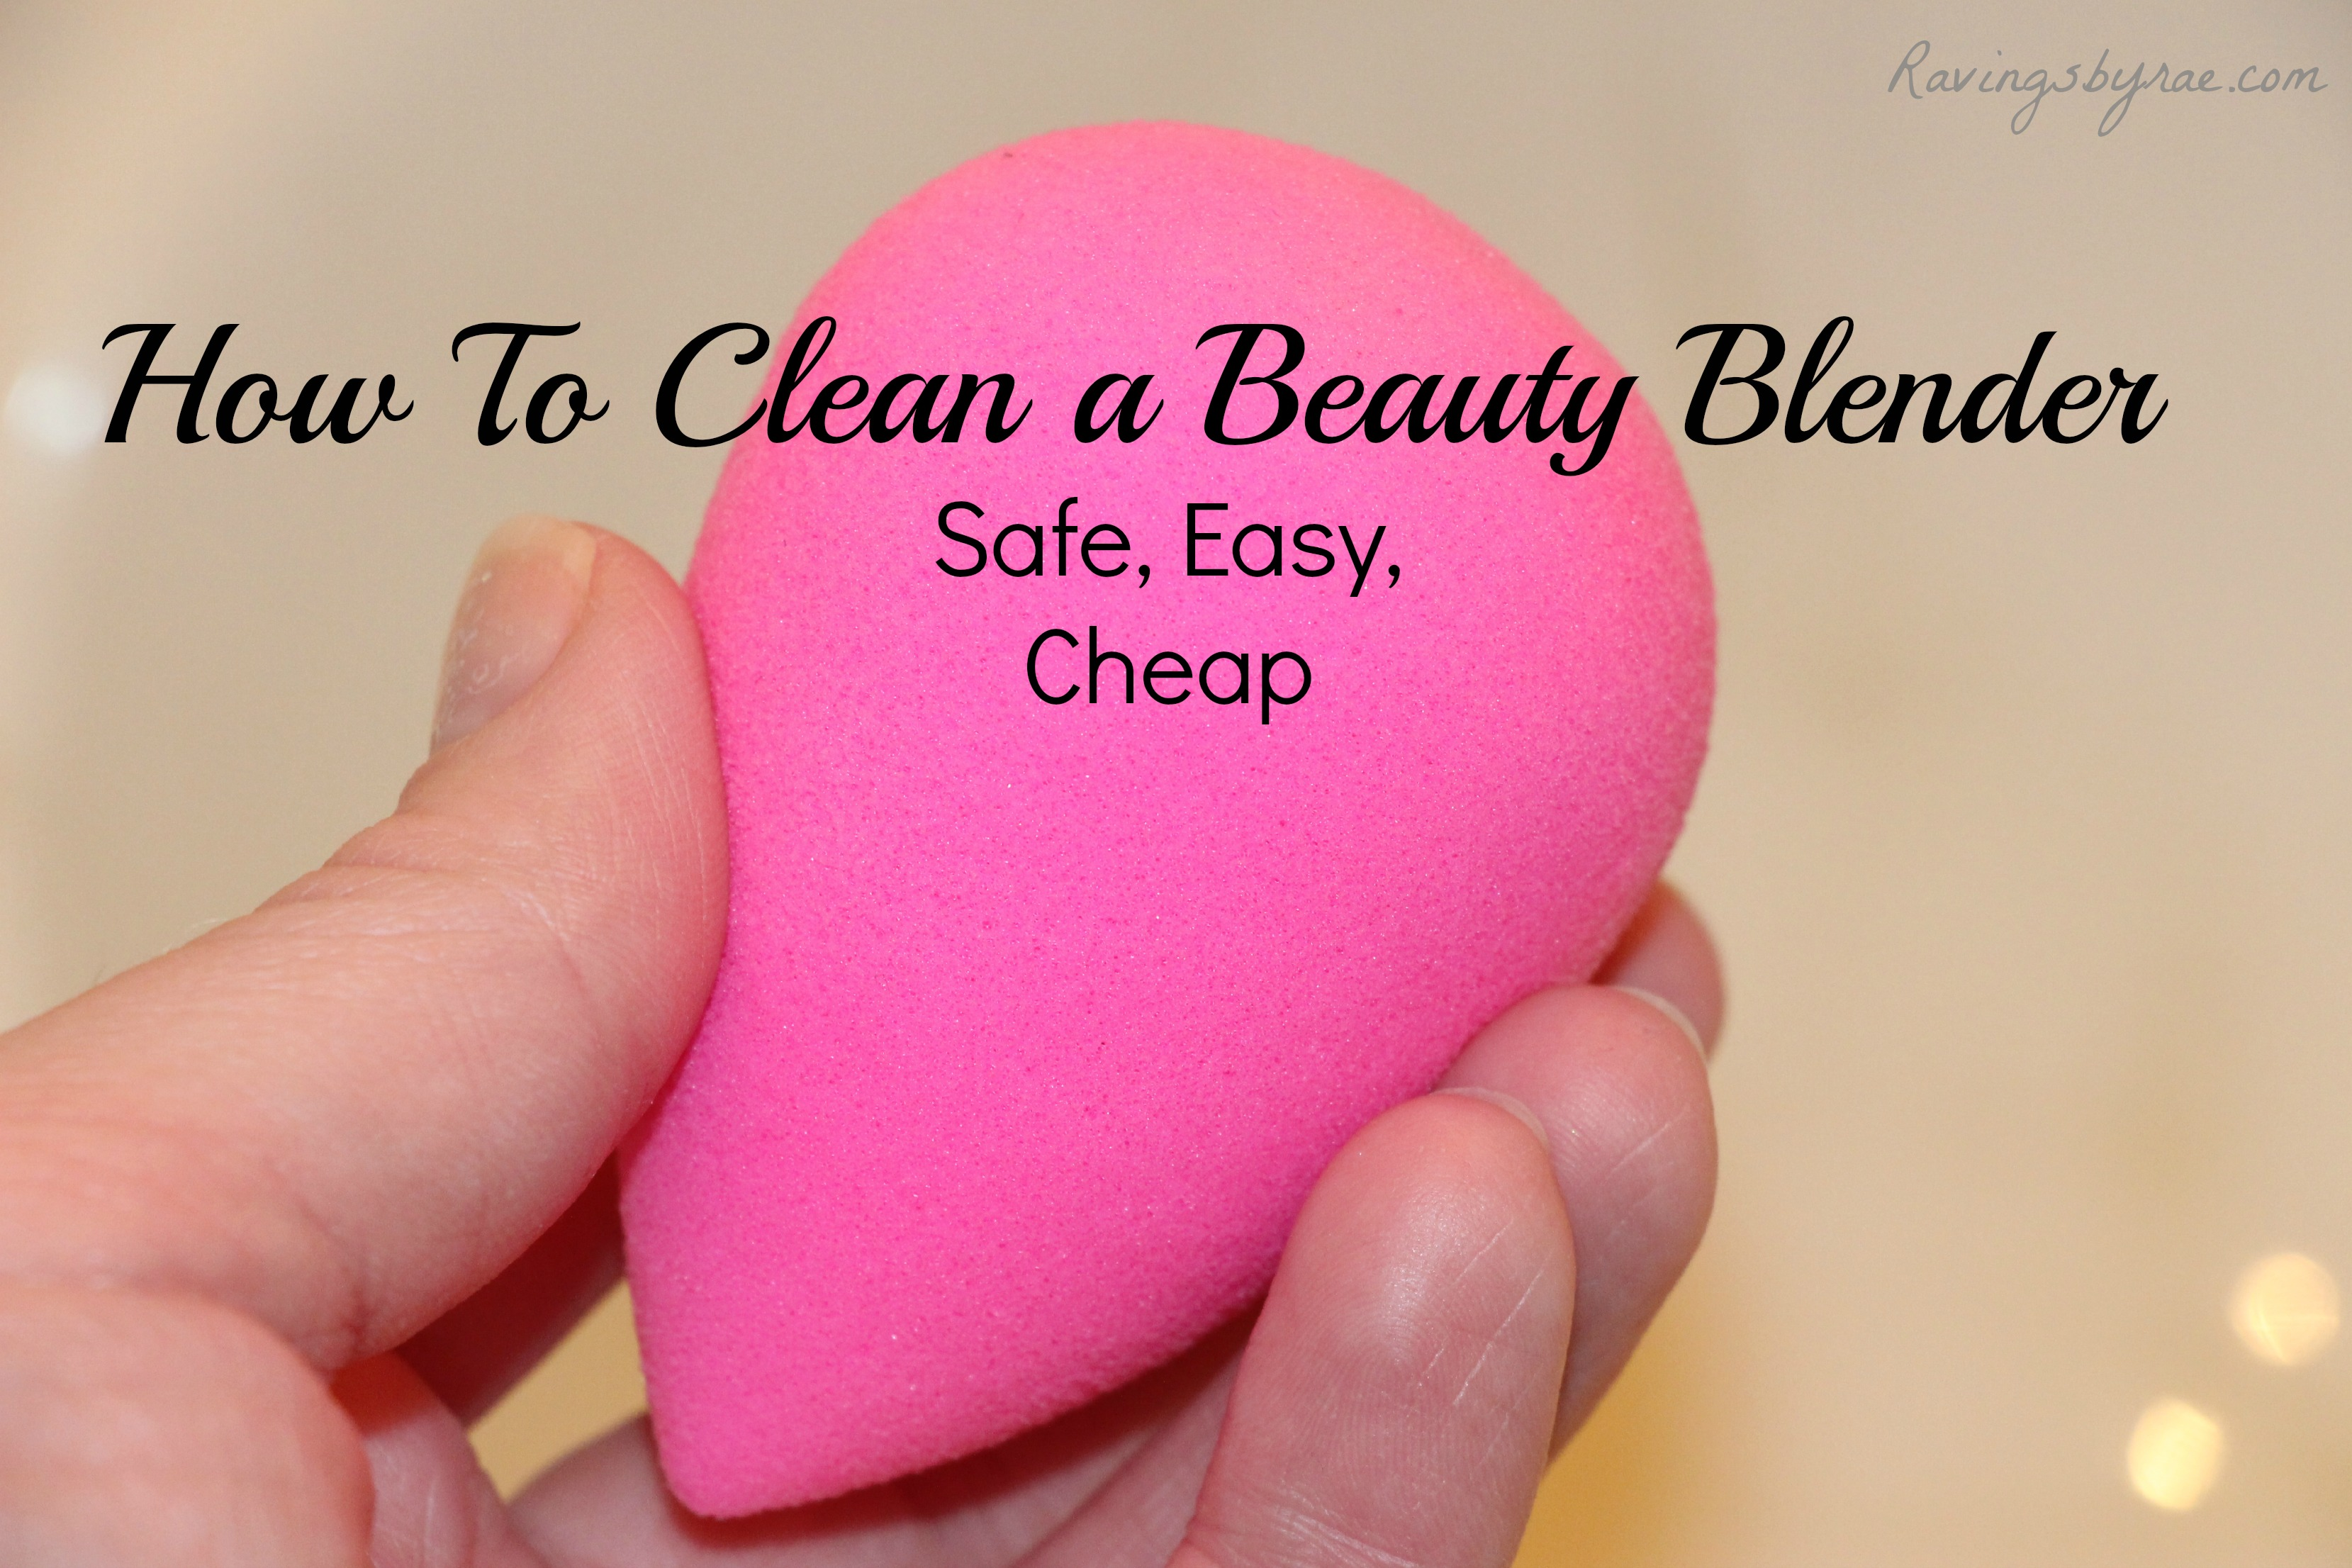 how to use beauty blender cleanser